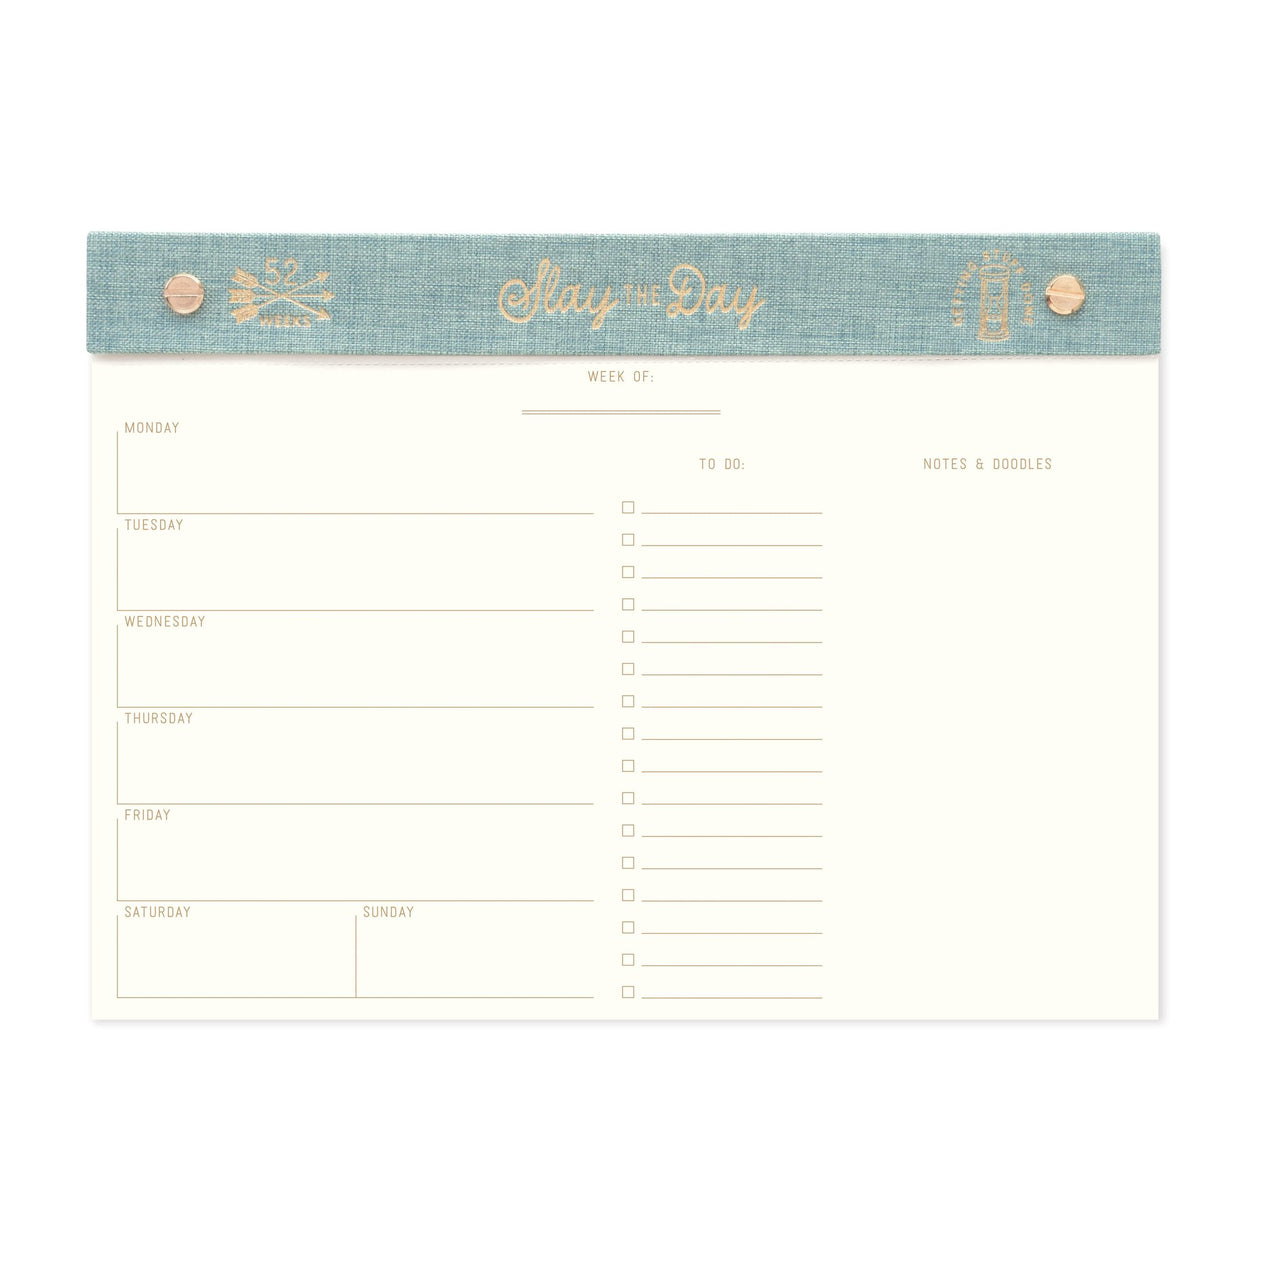 SLAY THE DAY WEEKLY PLANNER DESK PAD